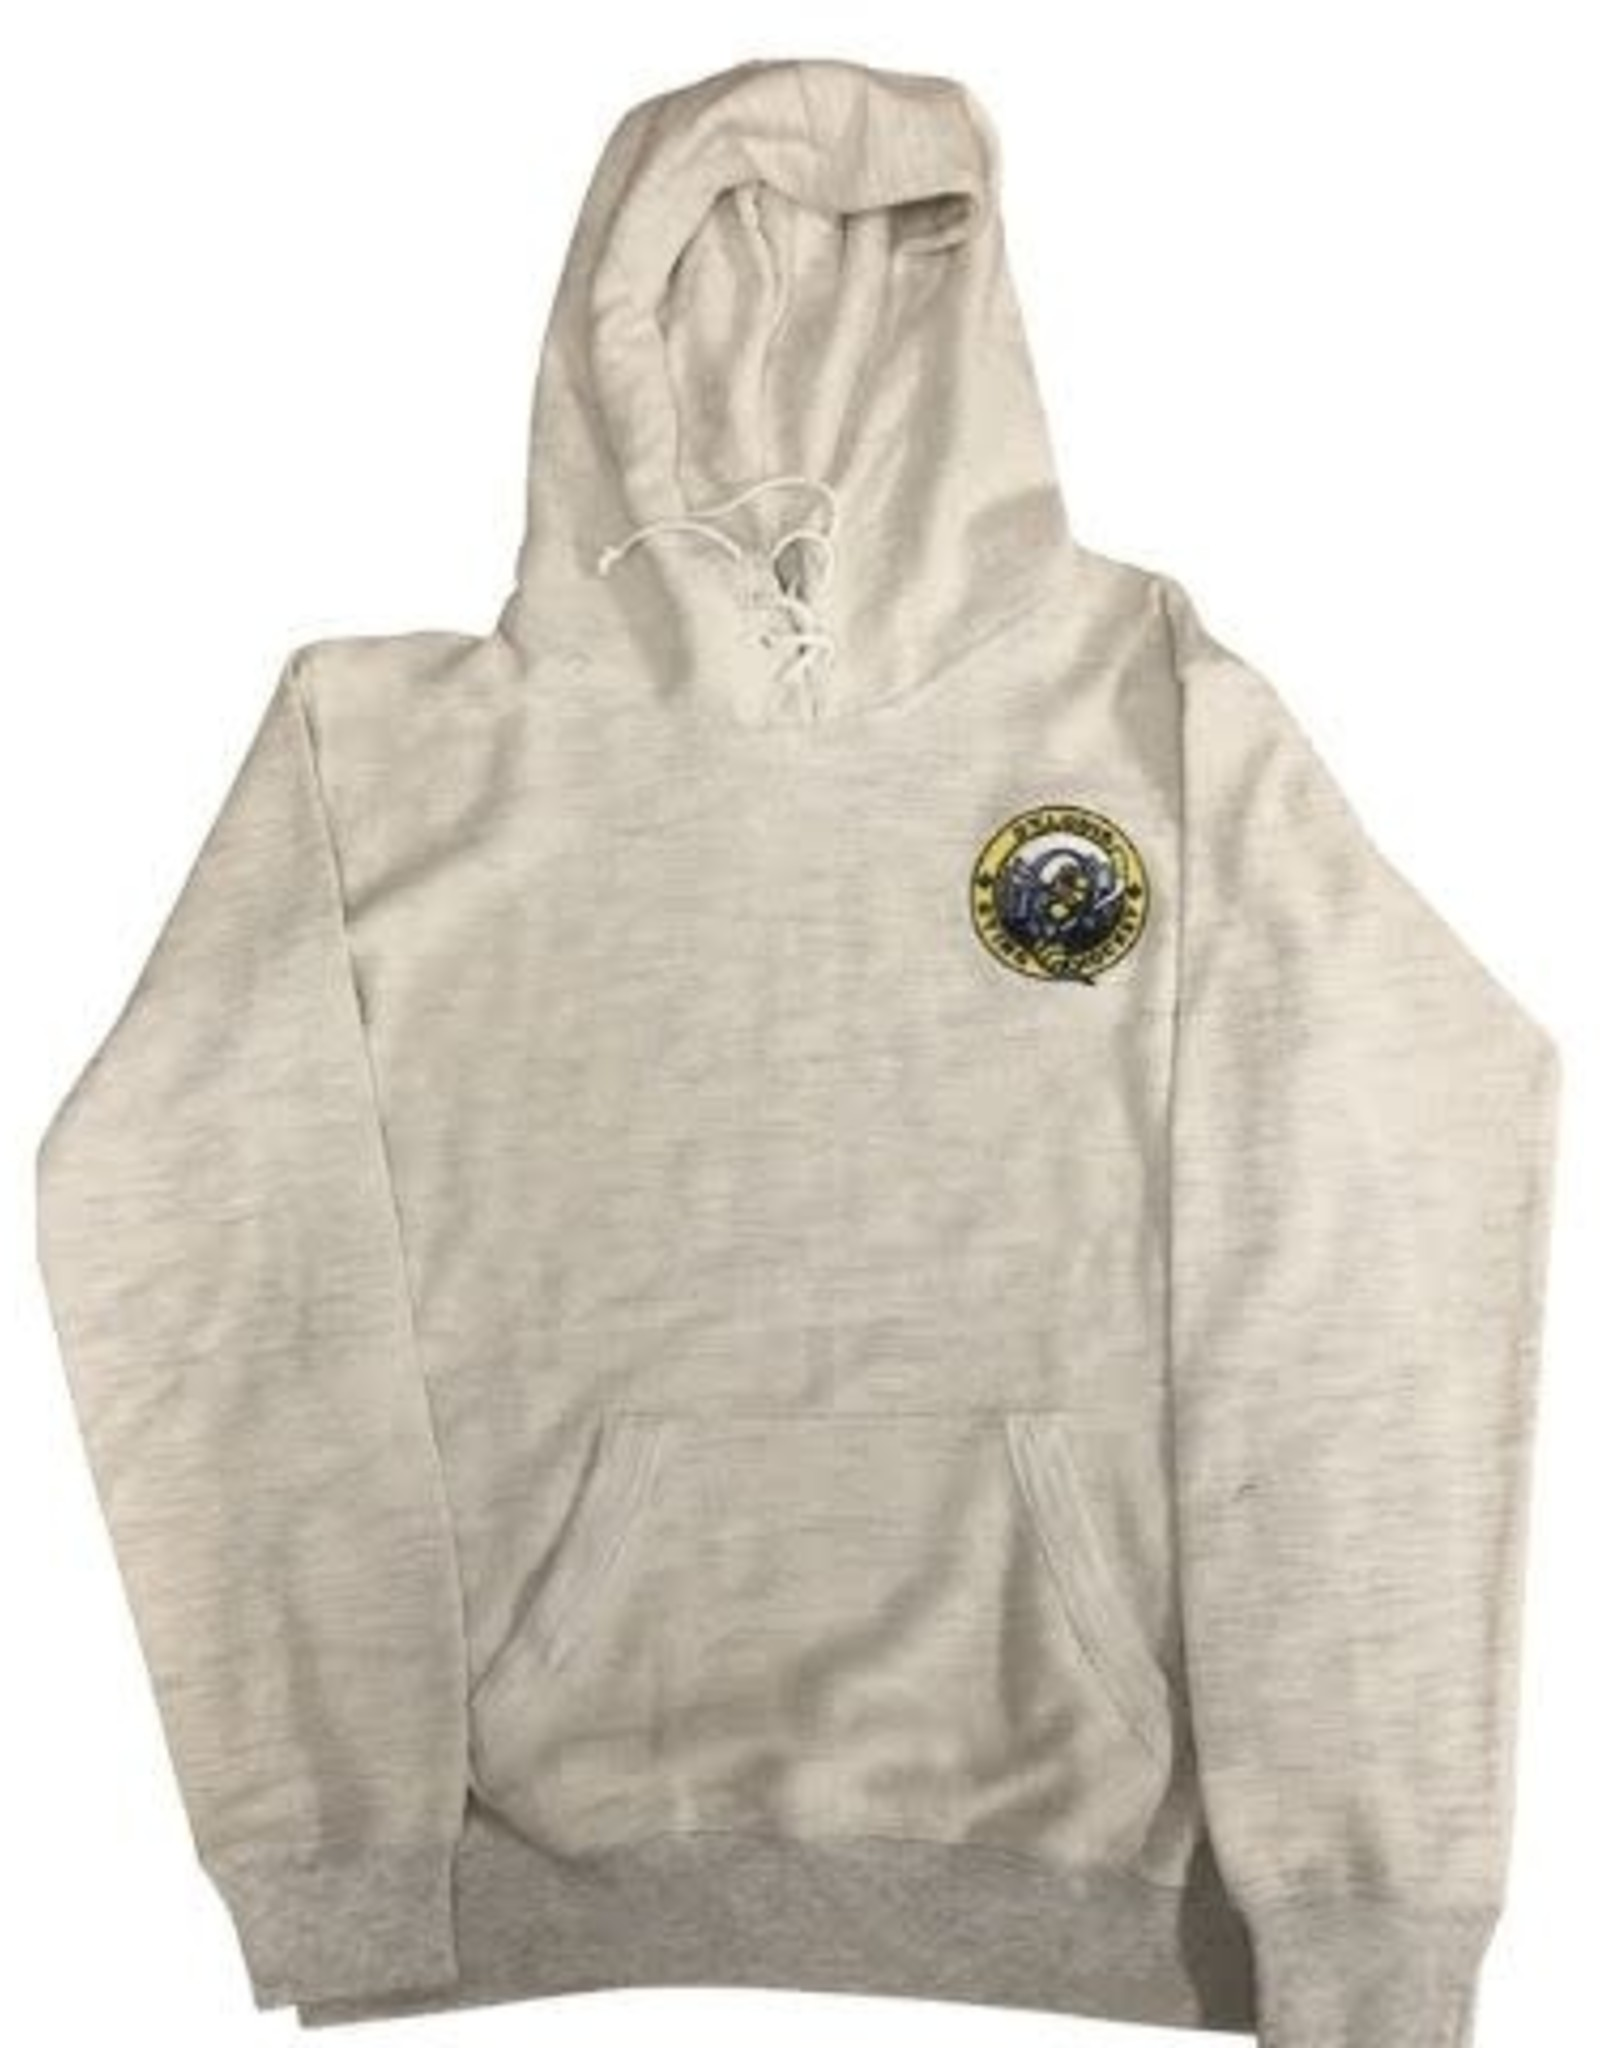 TGP Services Sting Fashion Hoody (Adult) Oatmeal